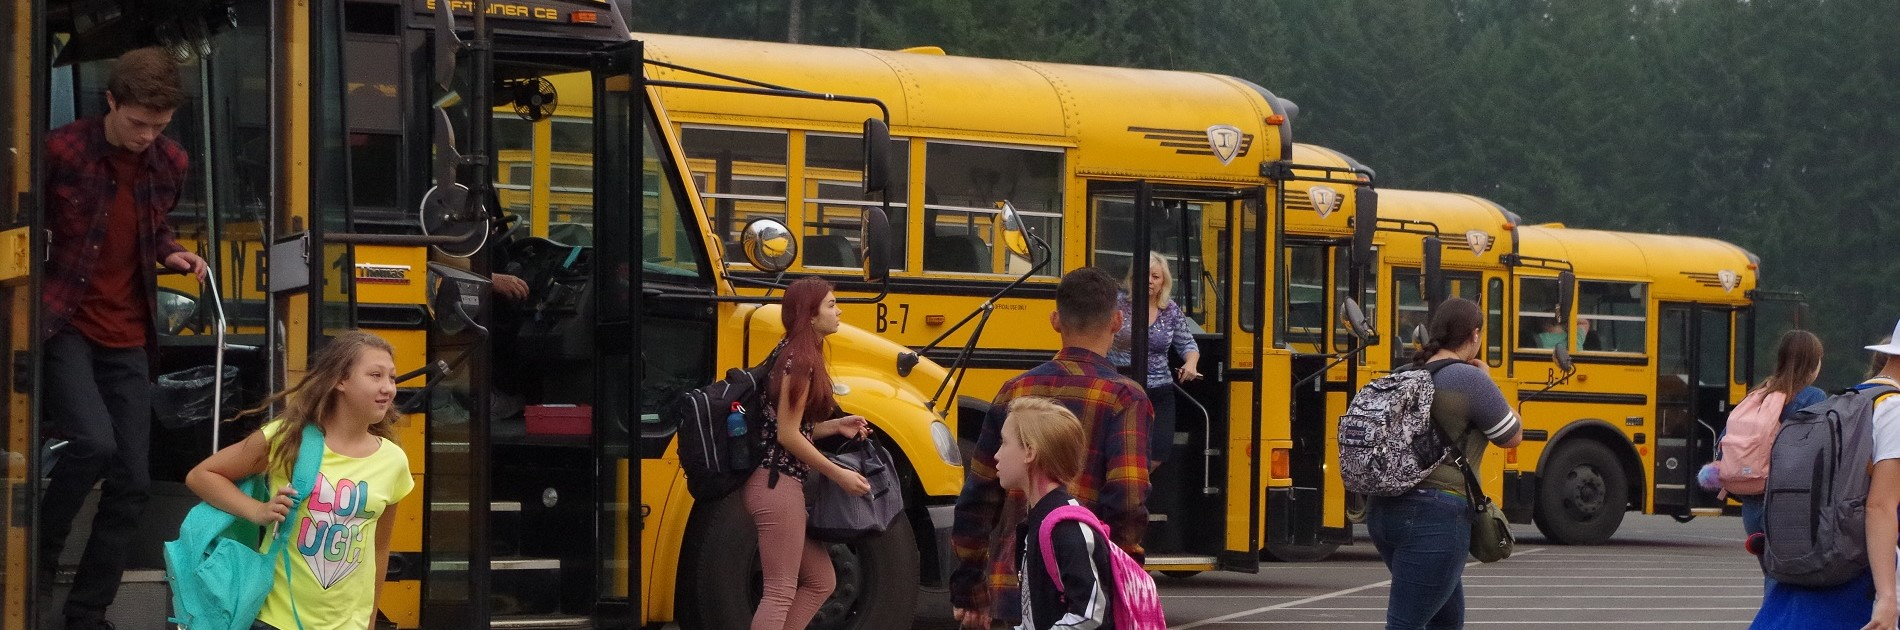 School buses drop students off safely at schools.